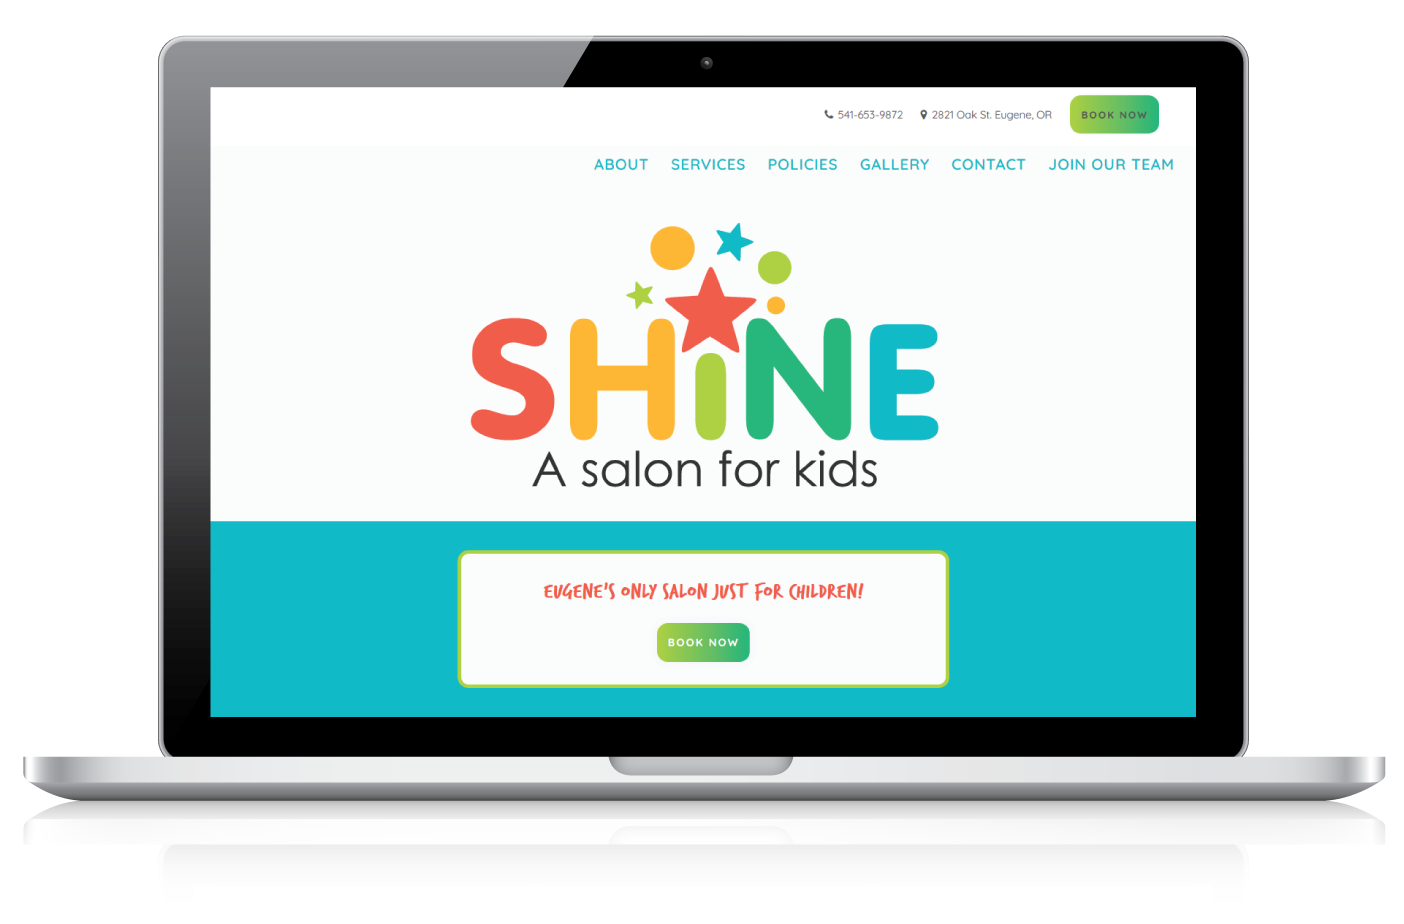 Shine - A Salon For Kids | Web Design | Featured Image